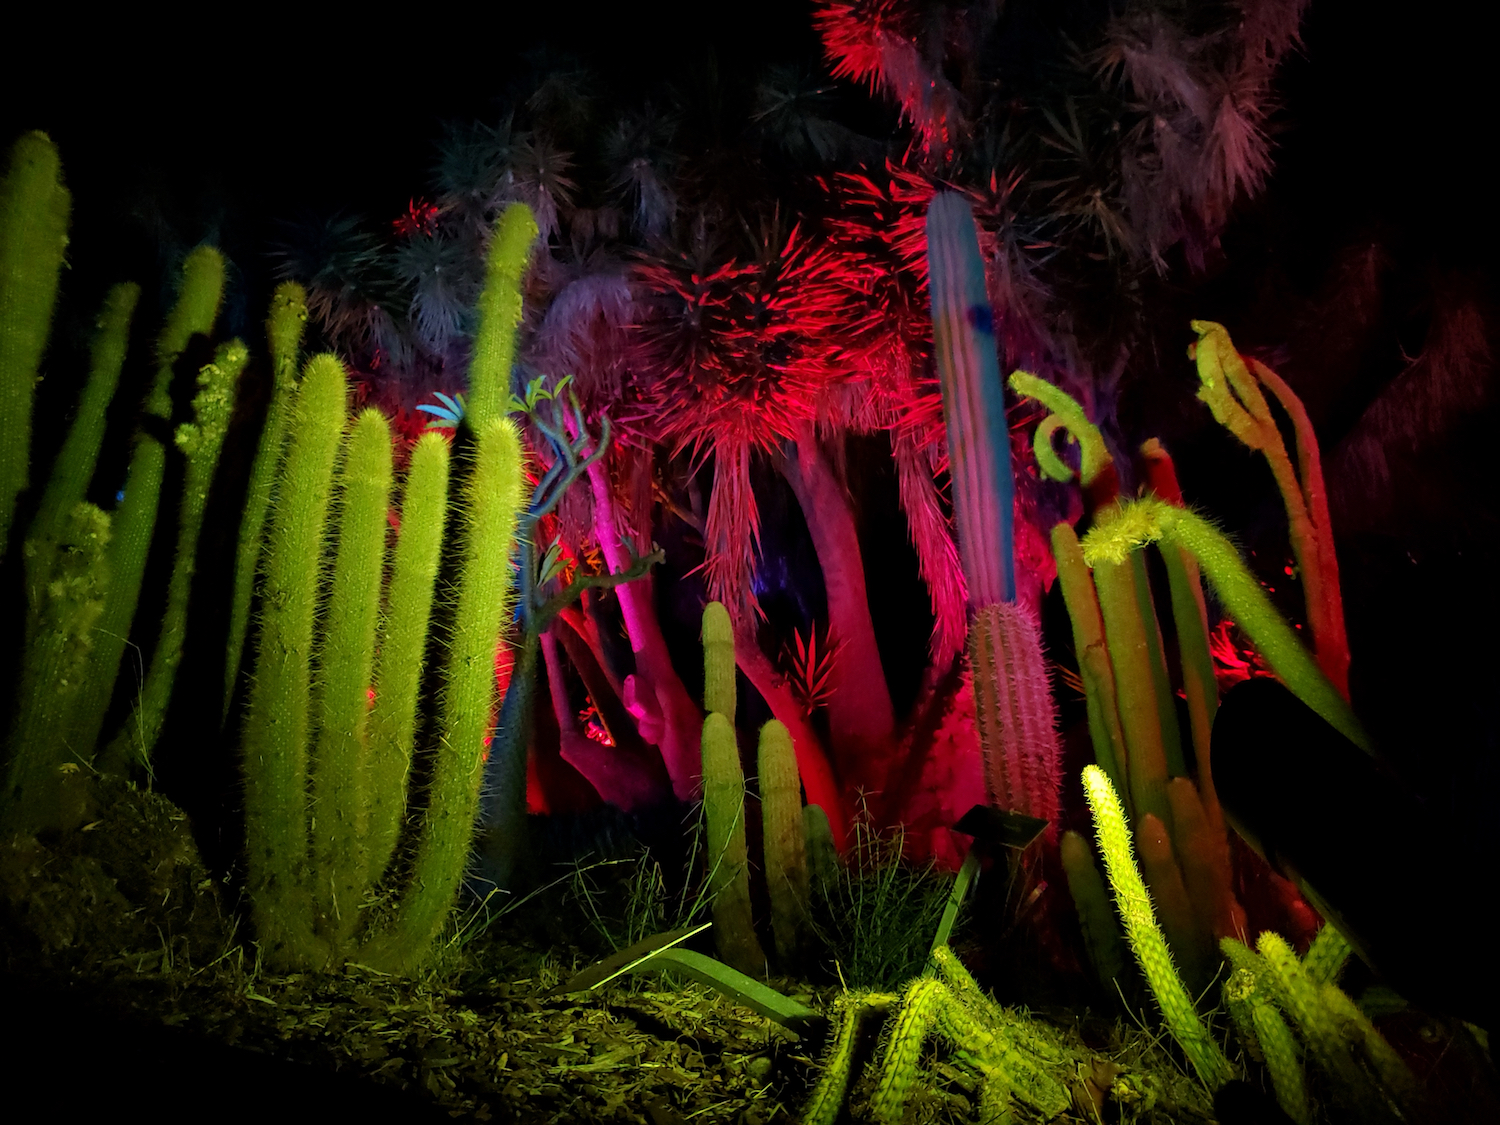 Cacti look like underwater coral when lit from beneath